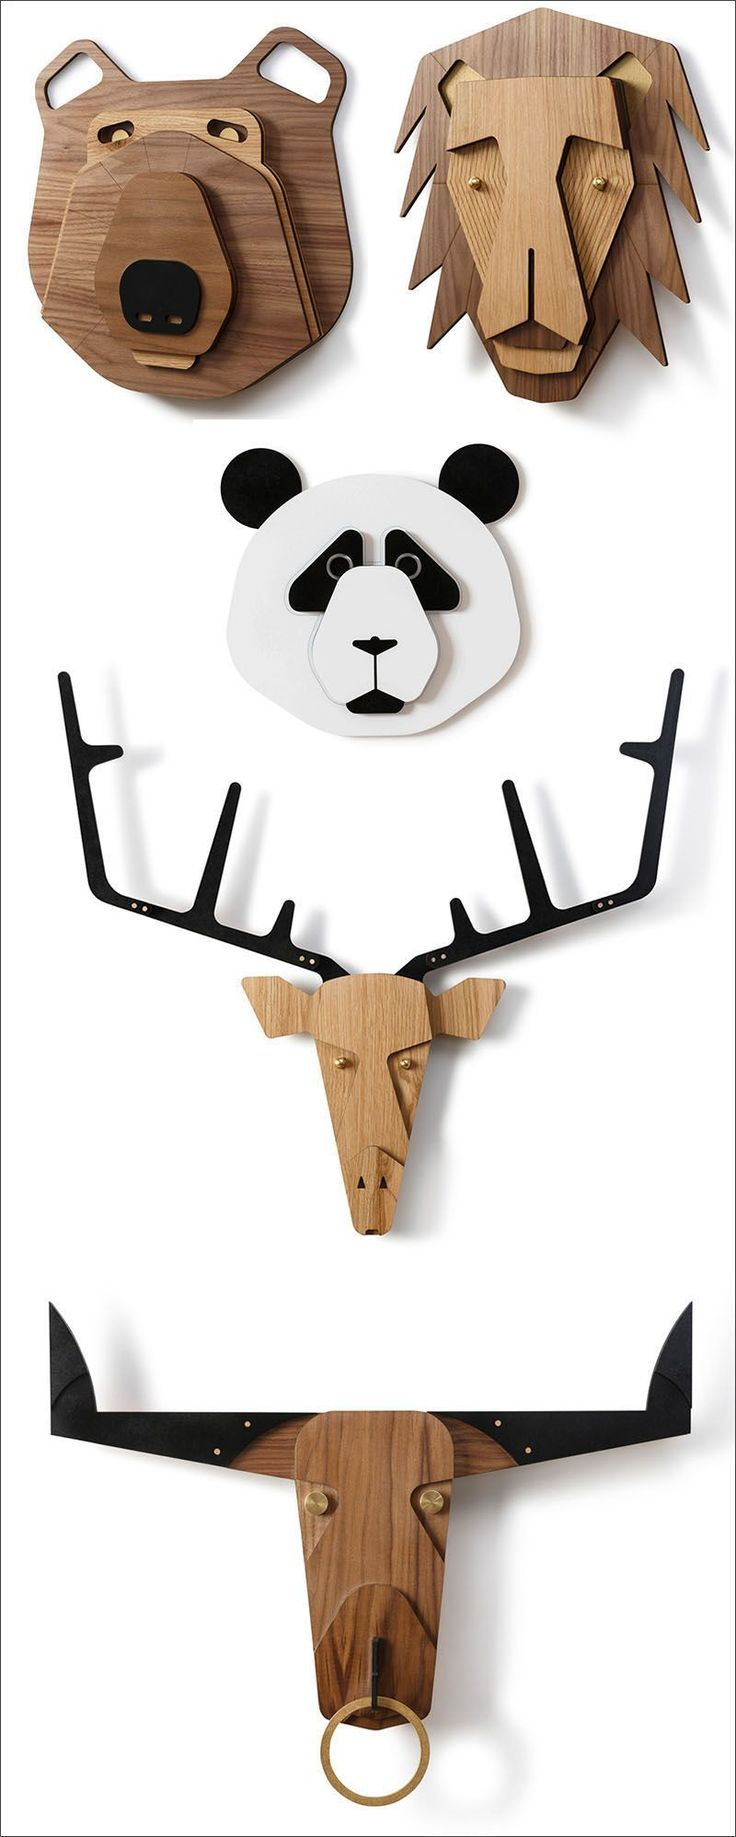 Tzachi Nevo has launched 'Hunter Wall', a collection of wood taxidermy animal heads inspired by African masks that can be hung alone or as a group to create whimsical wall decor. FREE: Download 50 WoodWorking Plans For All Your Projects!